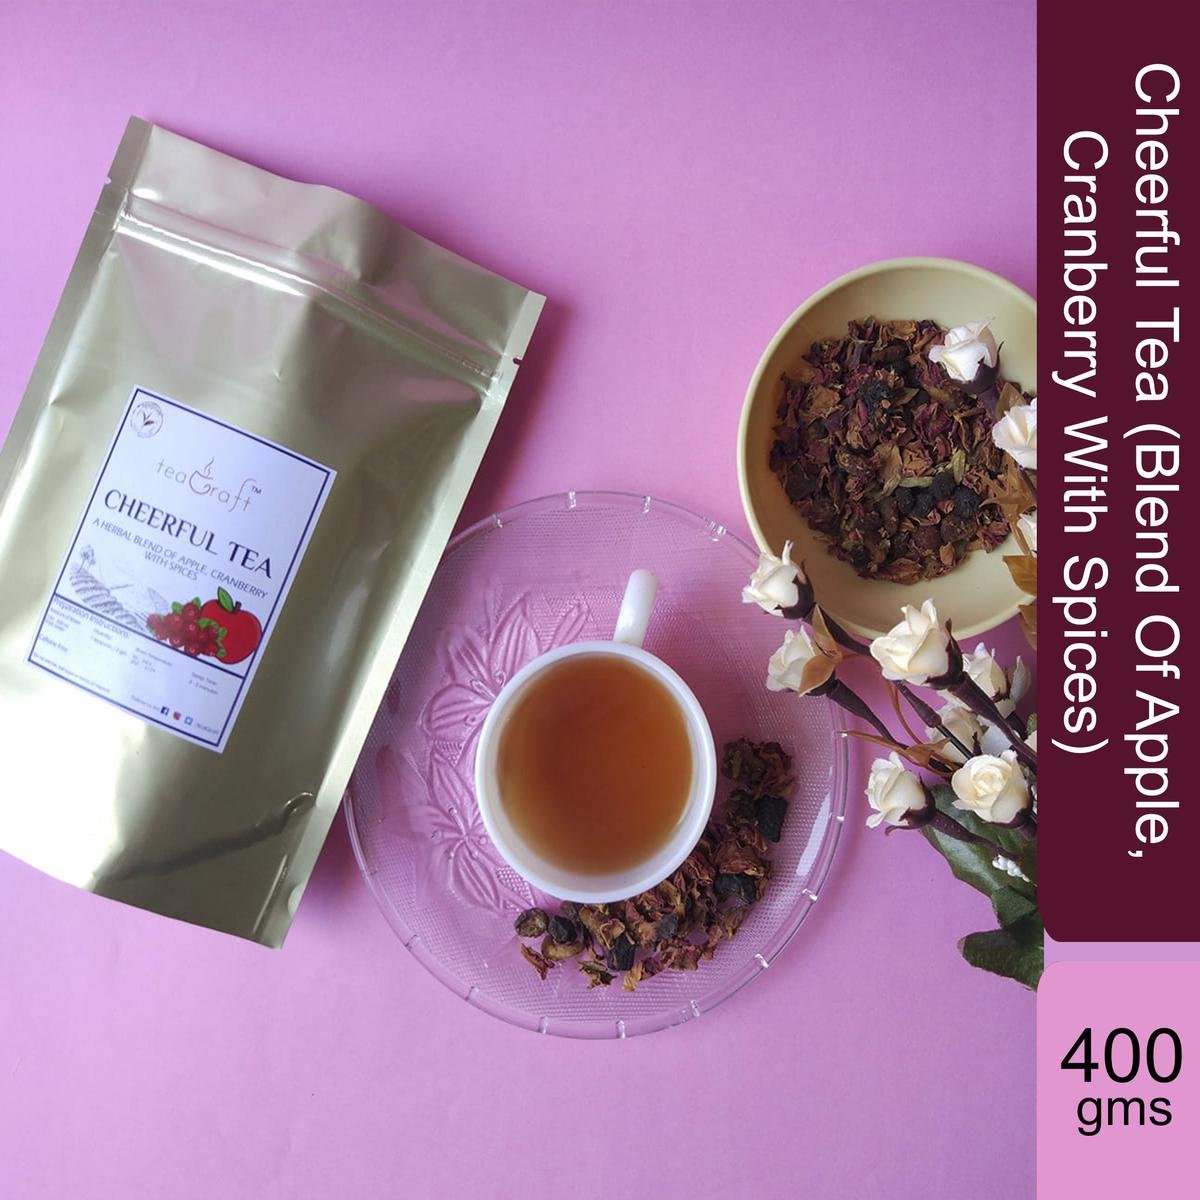 Cheerful Tea (Blend Of Apple, Cranberry With Spices) - 400 Gms